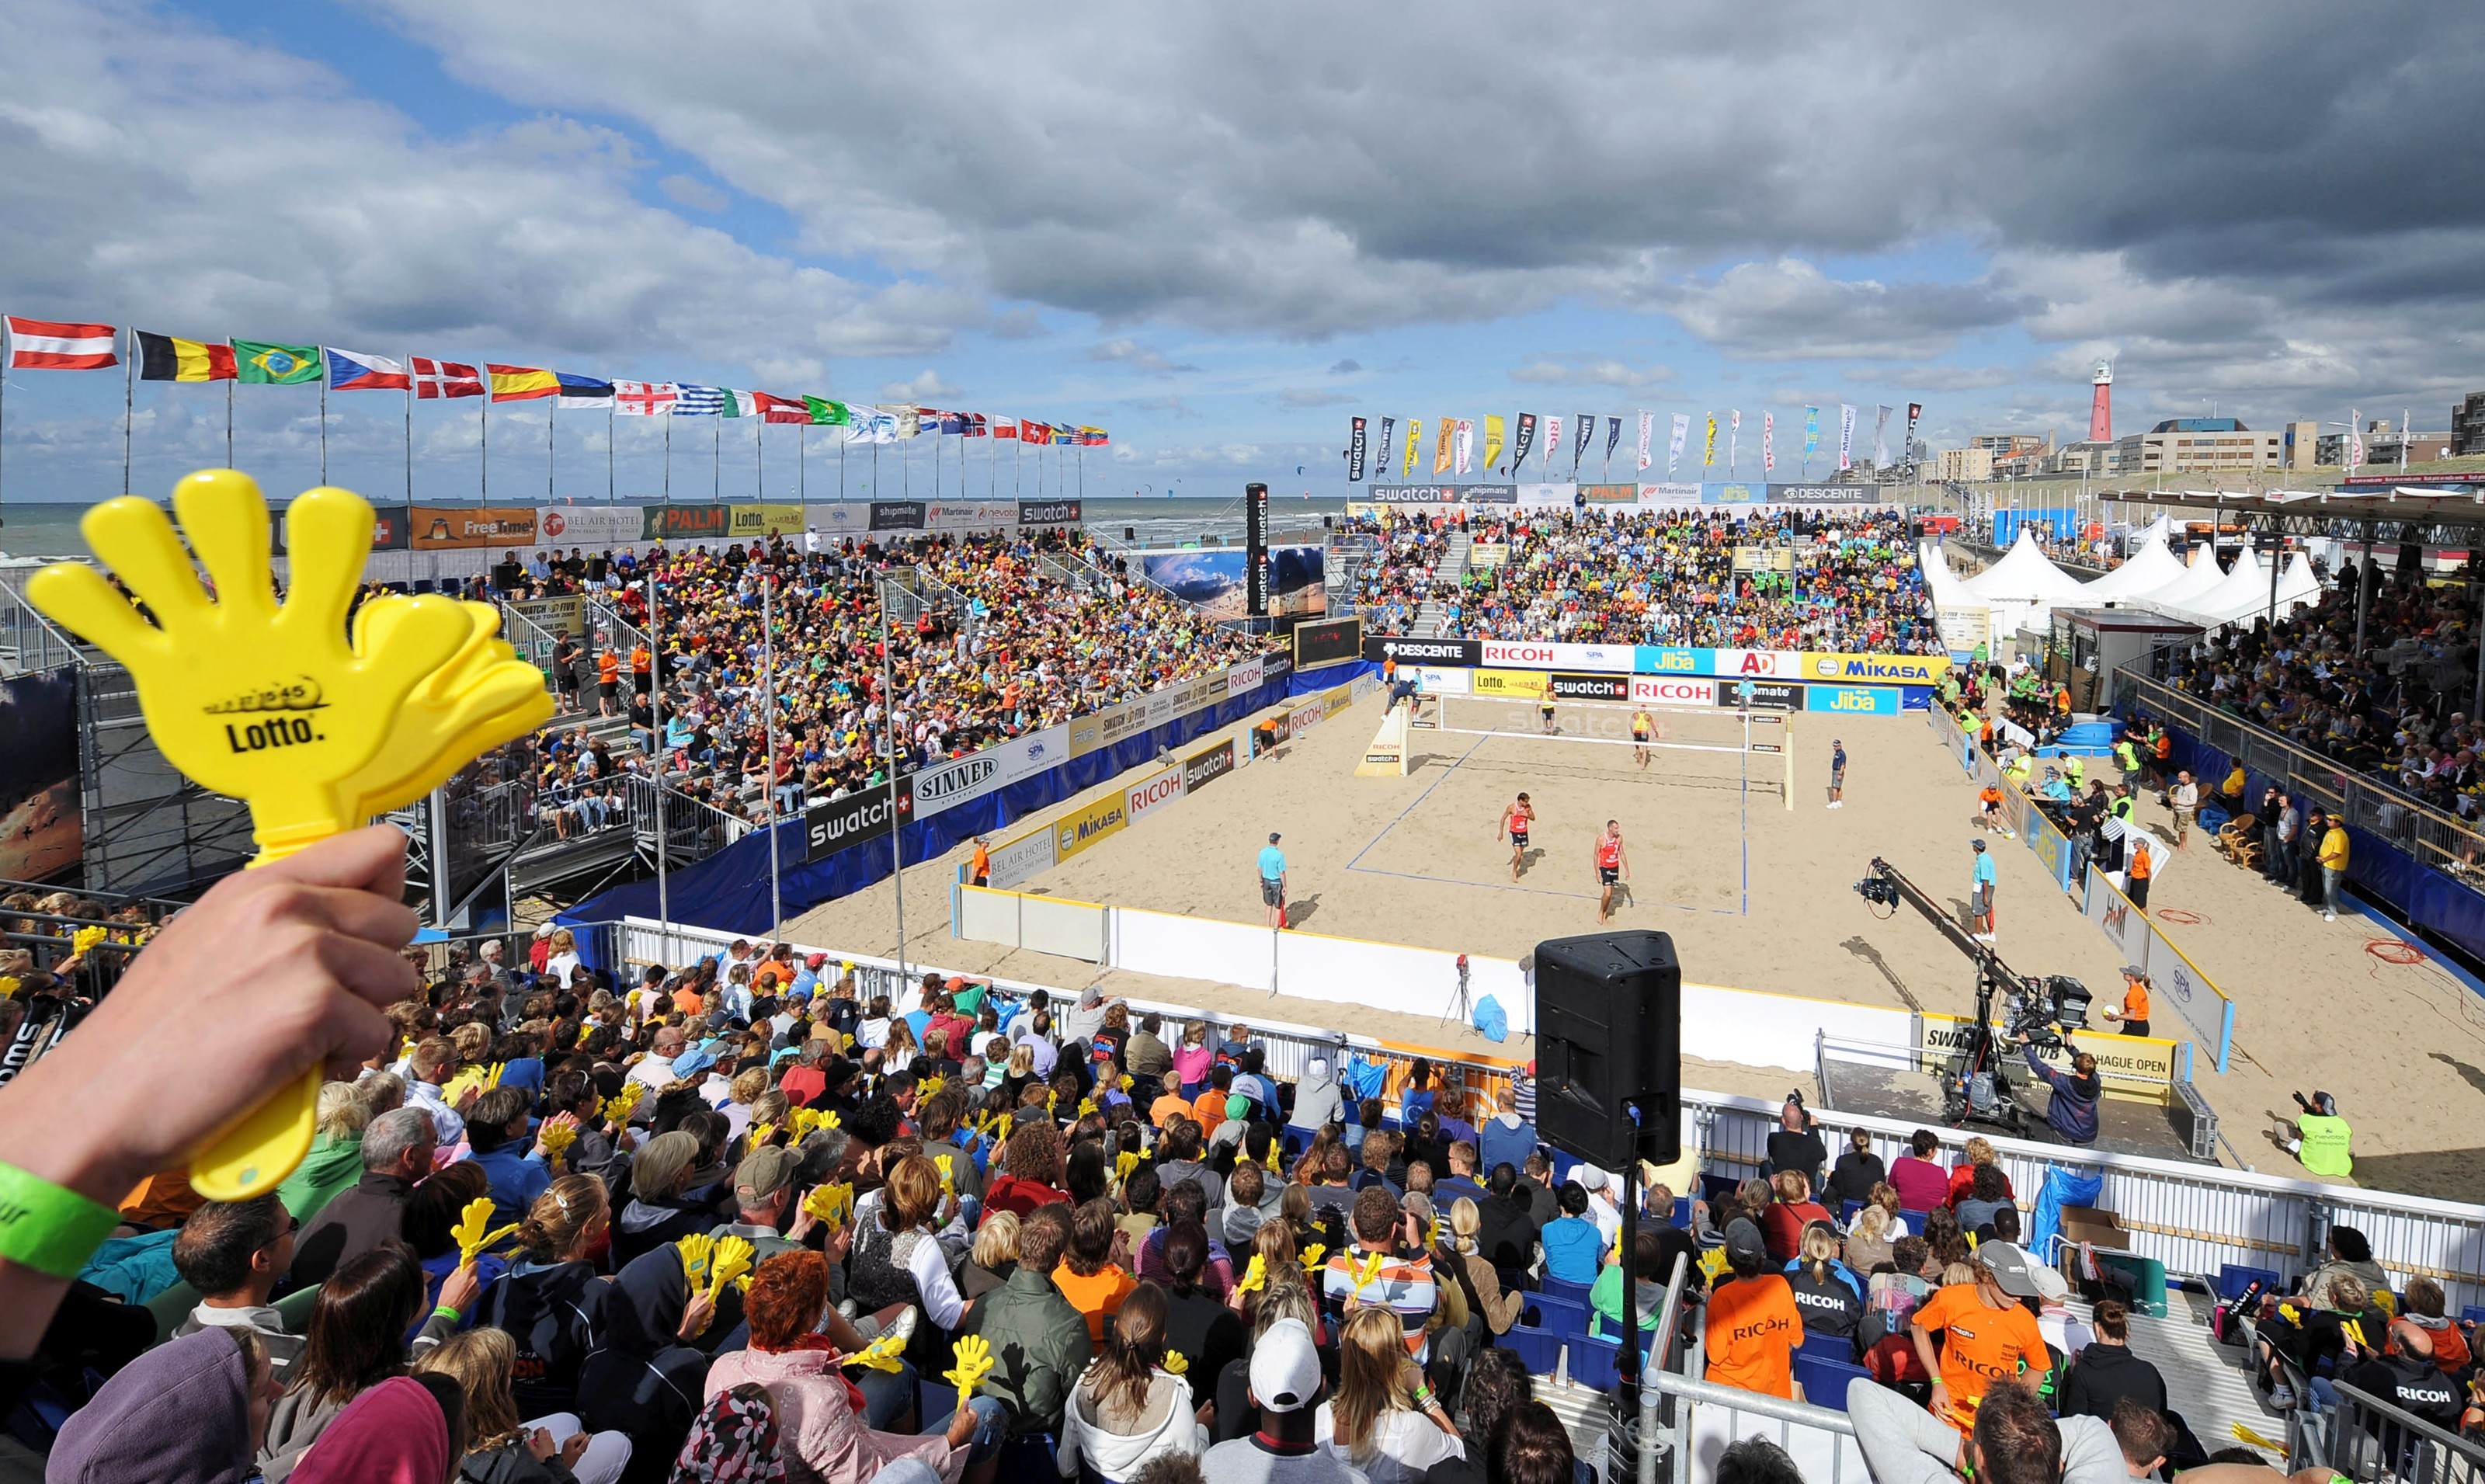 The Hague Beach Stadium Denhaag